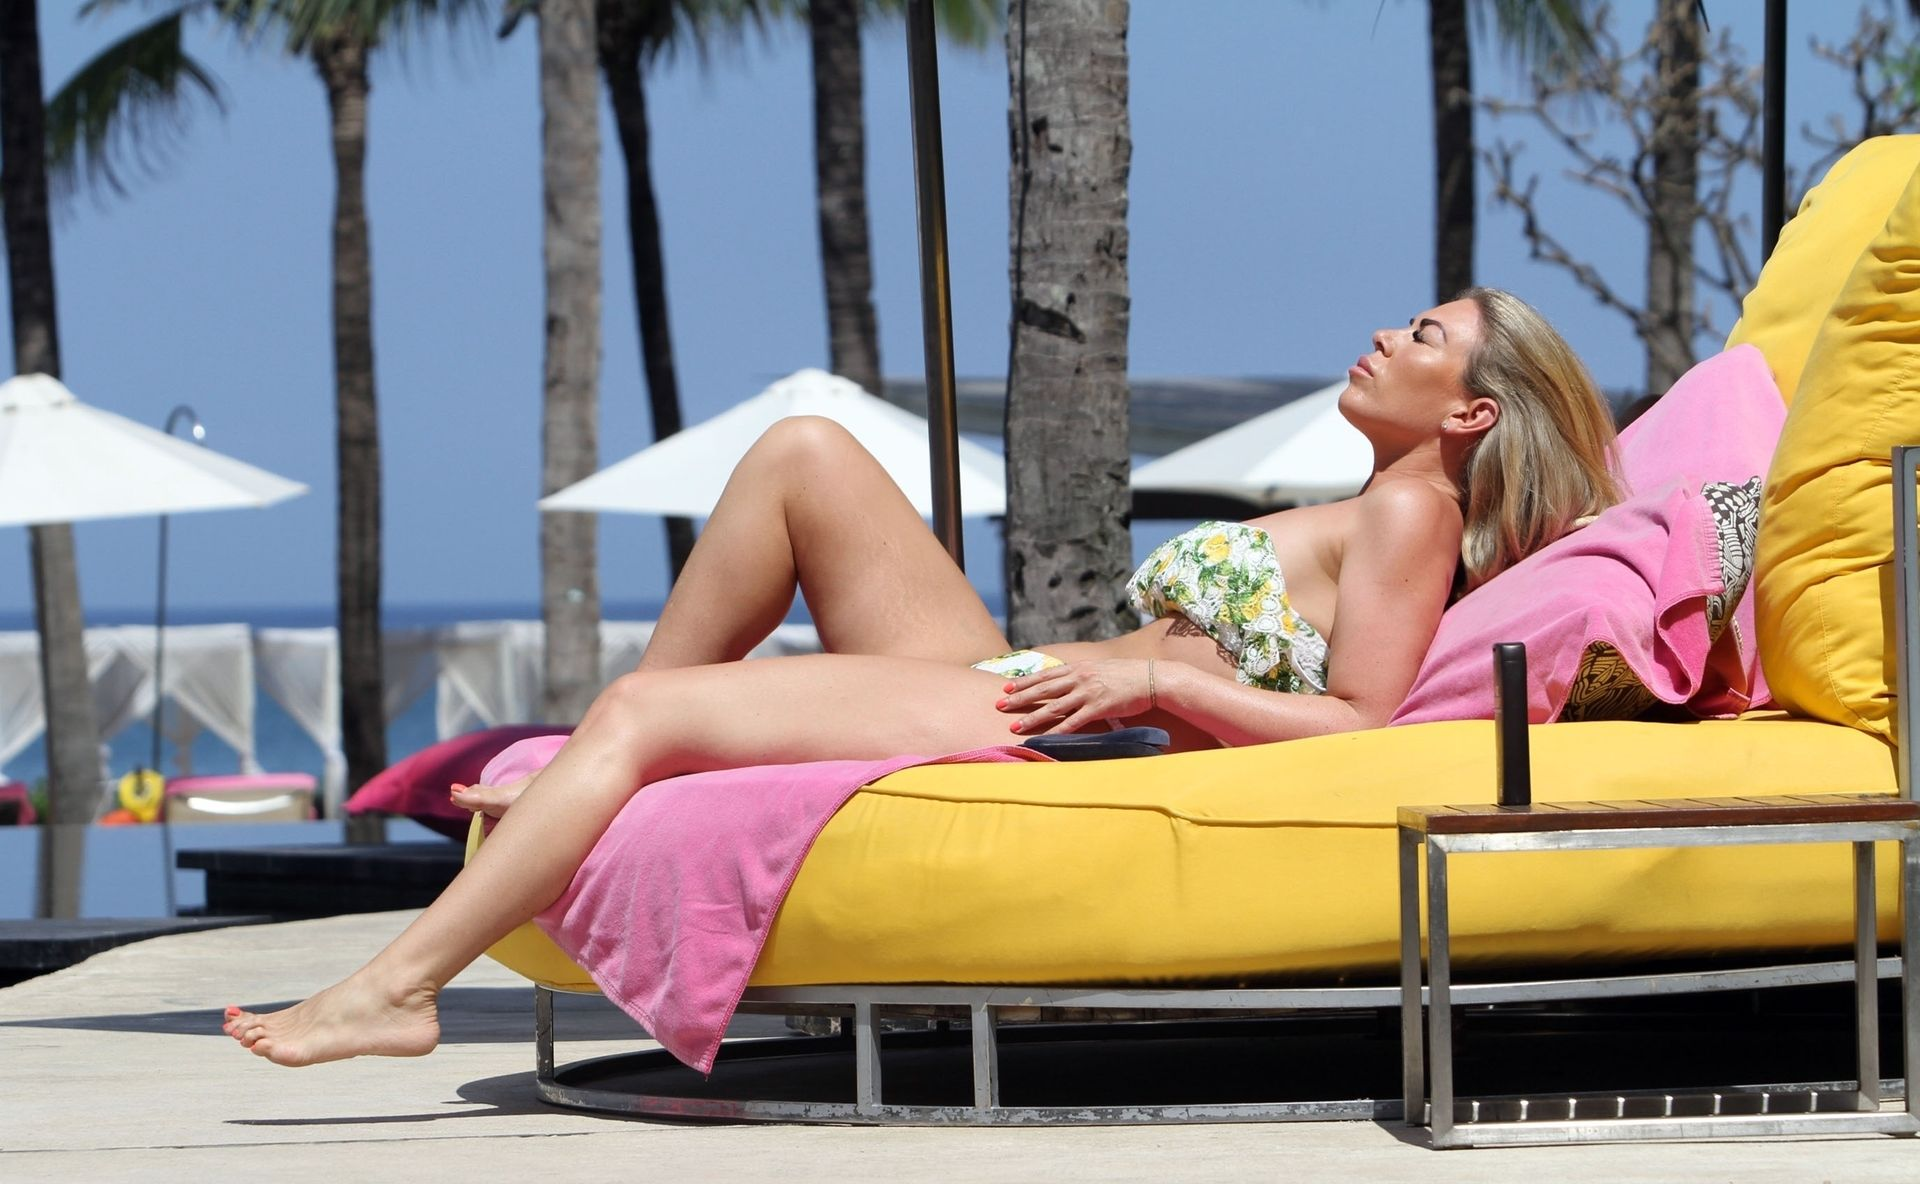 Frankie Essex in Bikini on Holiday in Lanzarote